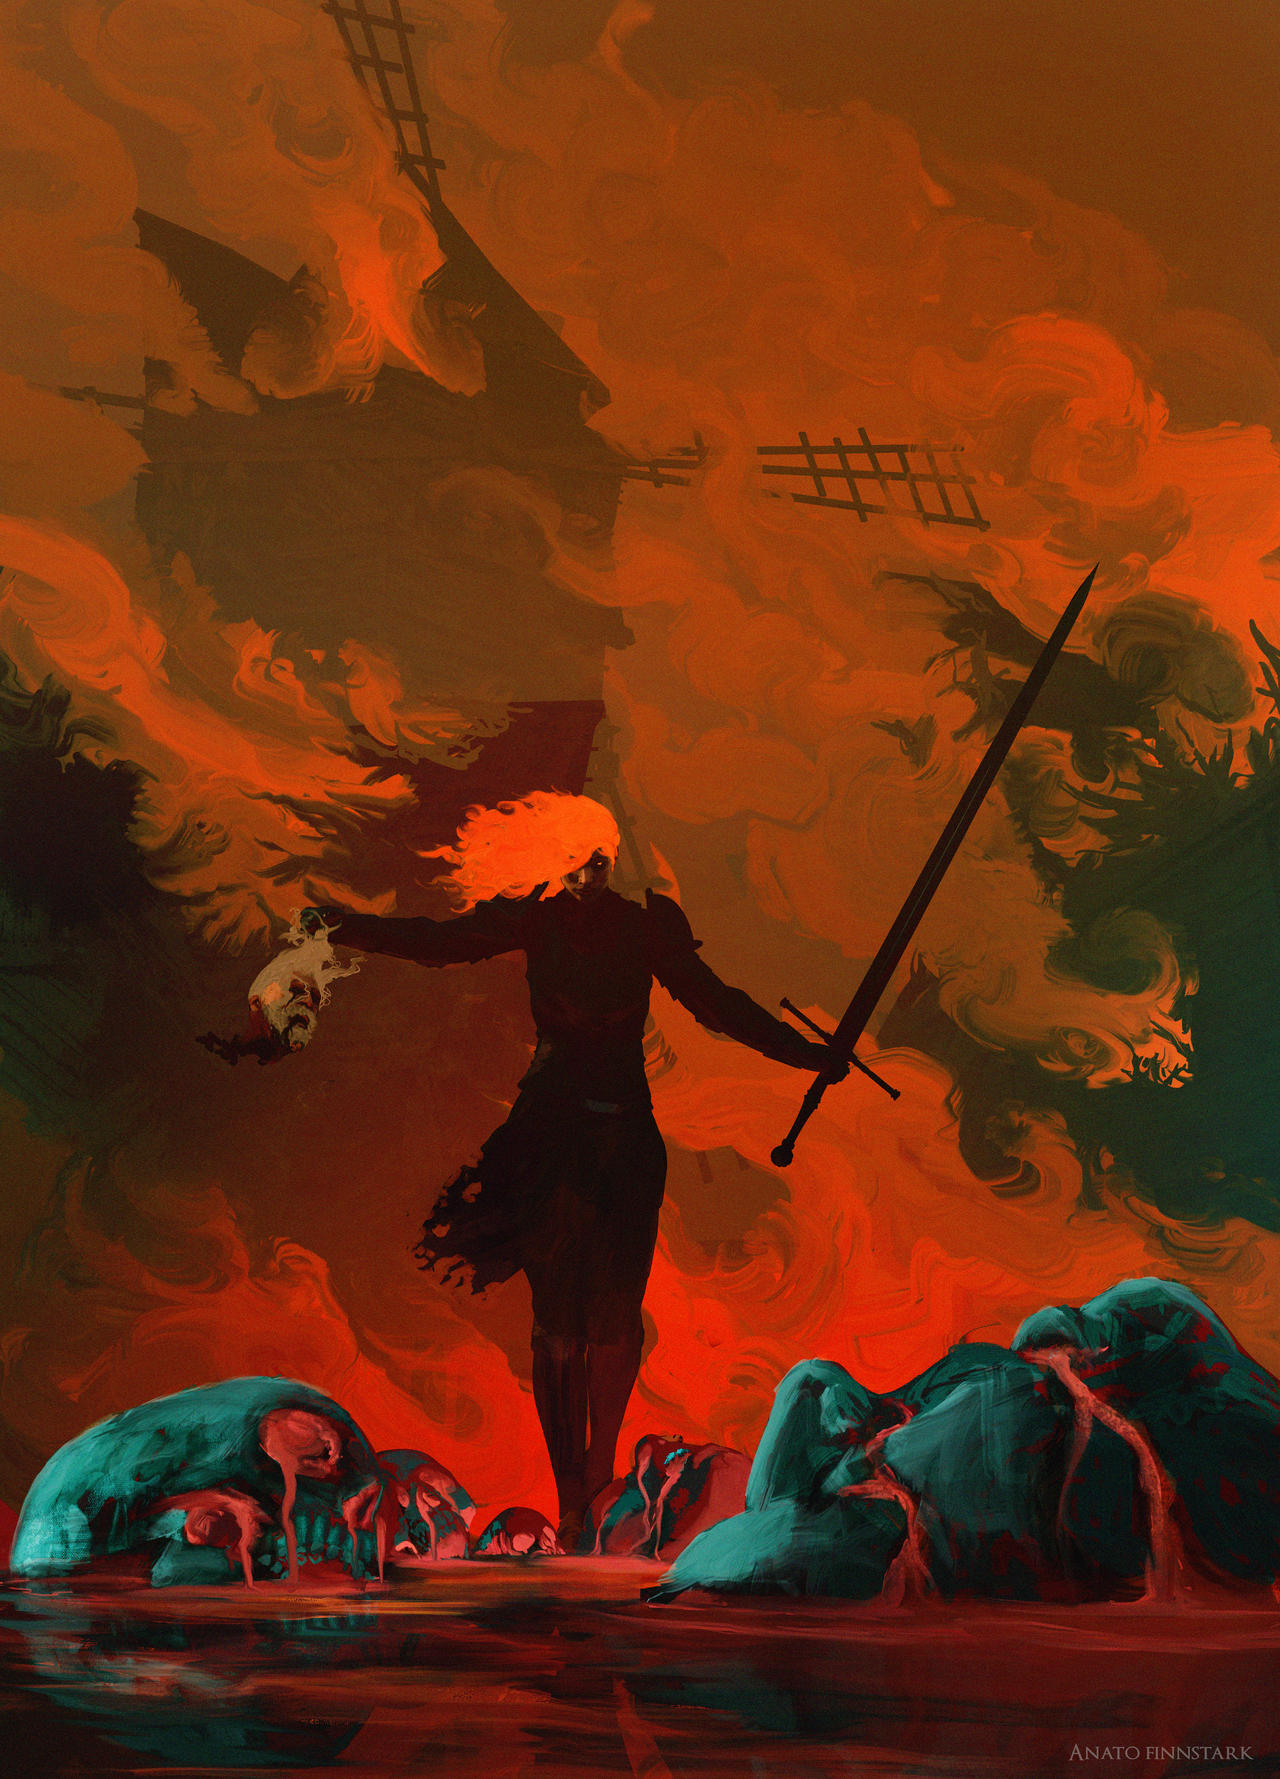 THE WITCHER: WITCH'S LAMENT #2 ( official cover )